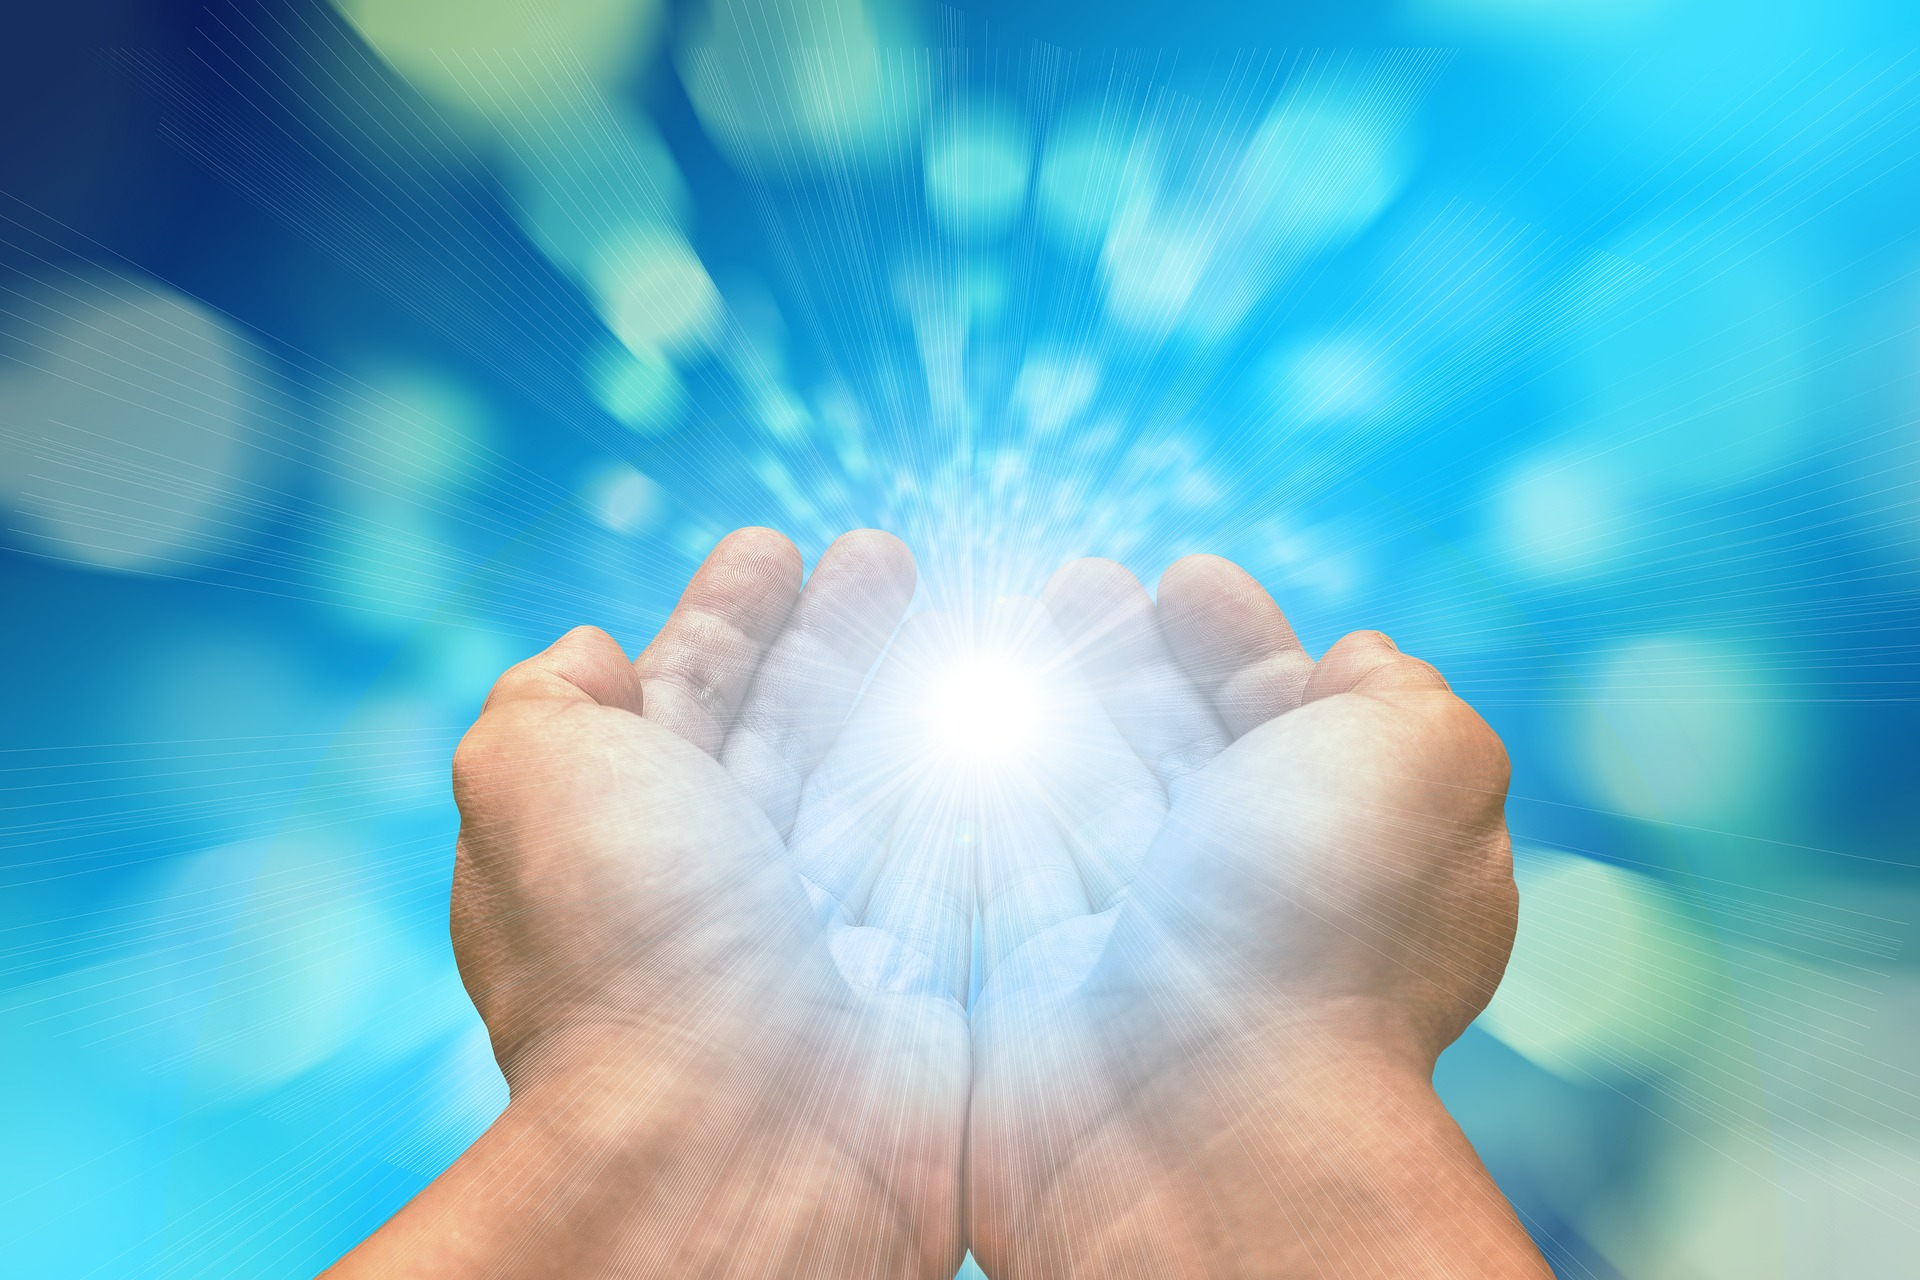 What you don't know about Enlightenment